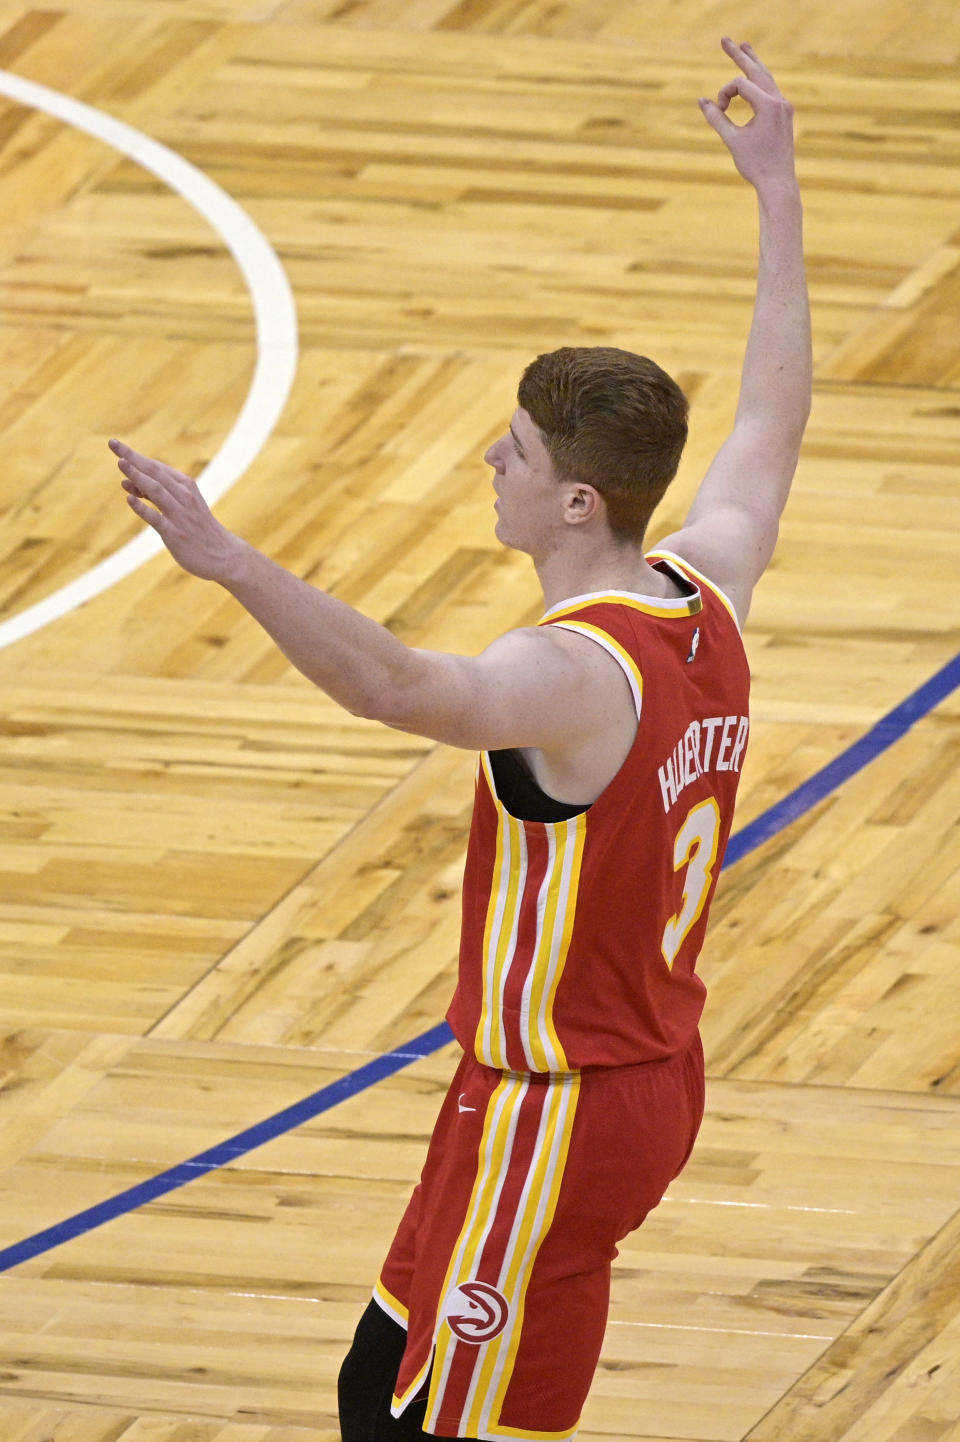 Atlanta Hawks guard Kevin Huerter celebrates after scoring a 3-pointer during the second half of the team's NBA basketball game against the Orlando Magic, Wednesday, March 3, 2021, in Orlando, Fla. (AP Photo/Phelan M. Ebenhack)